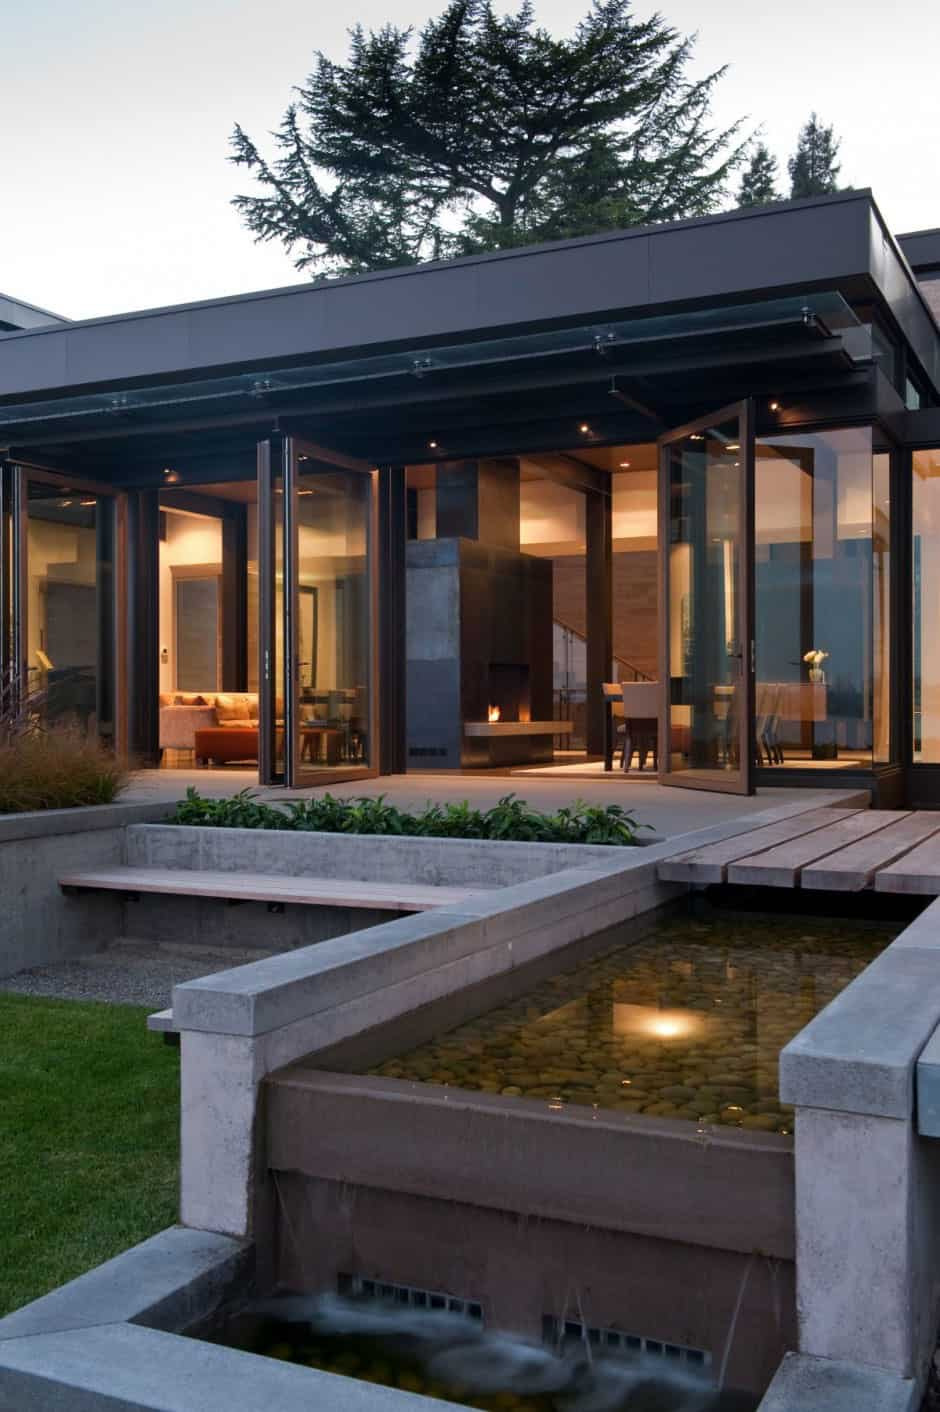 h house inspired by water inside and out 3